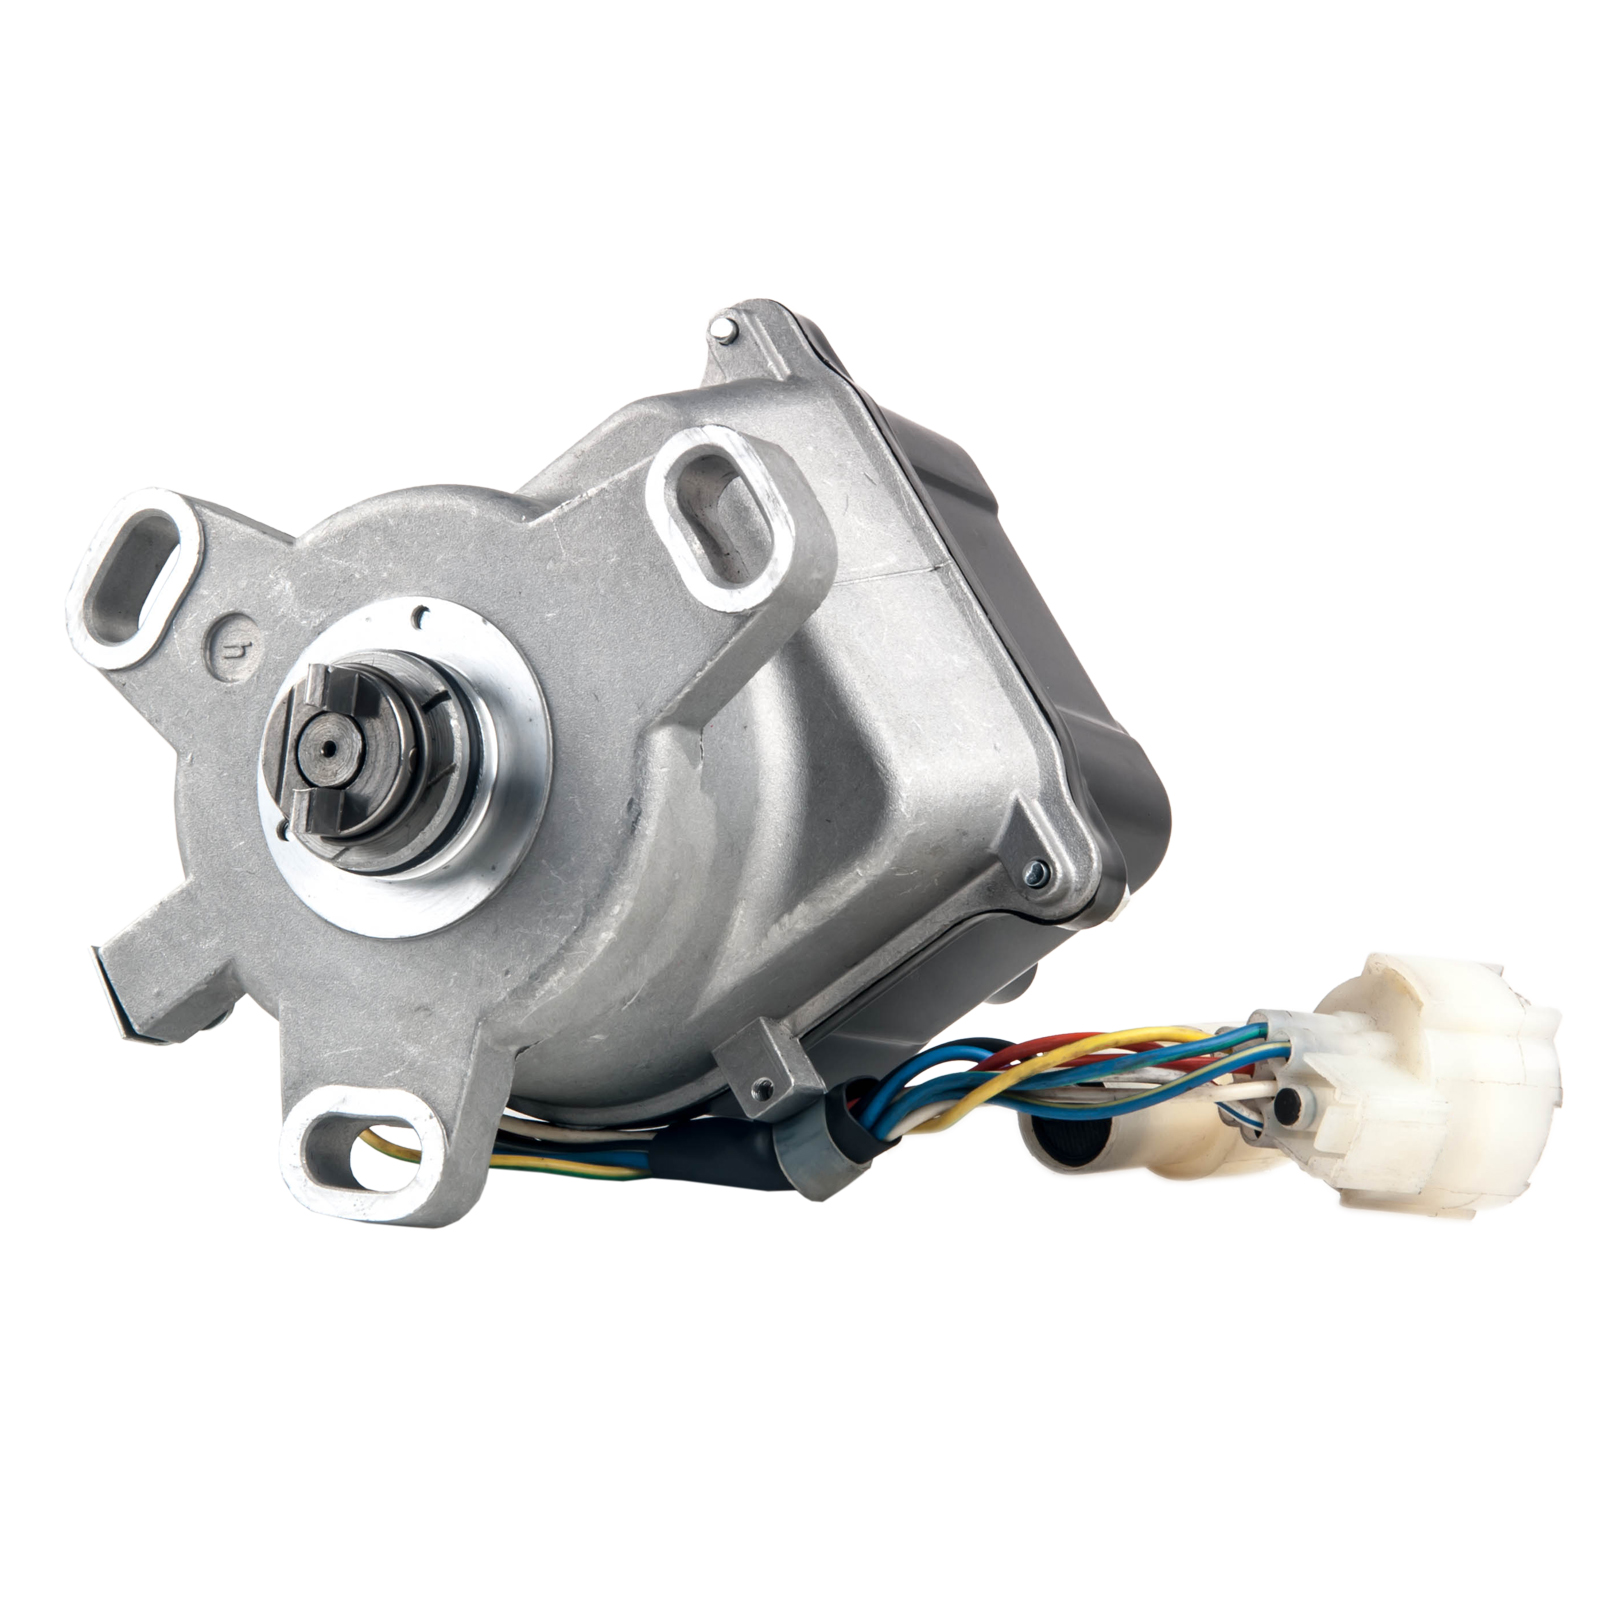 New Ignition Distributor For Acura Integra 90-91 Fits TD